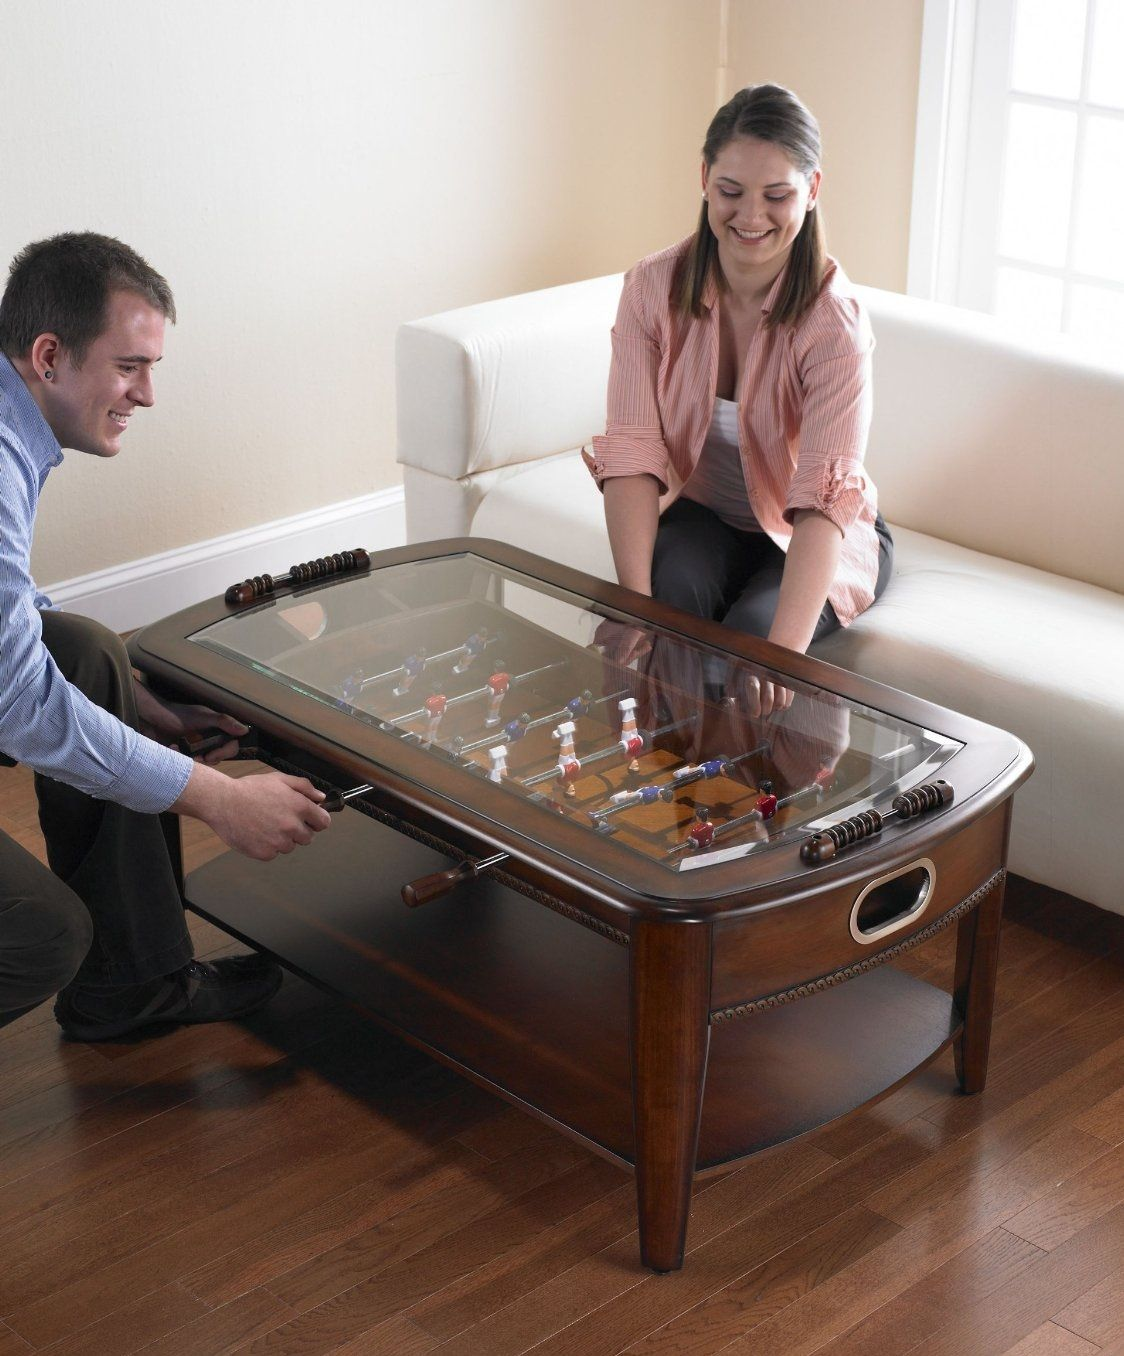 The Foosball Coffee Table - $549.00 http://www.strictlymancave.com/foosball-coffee-table/ #mancave #foosball #coffee #table